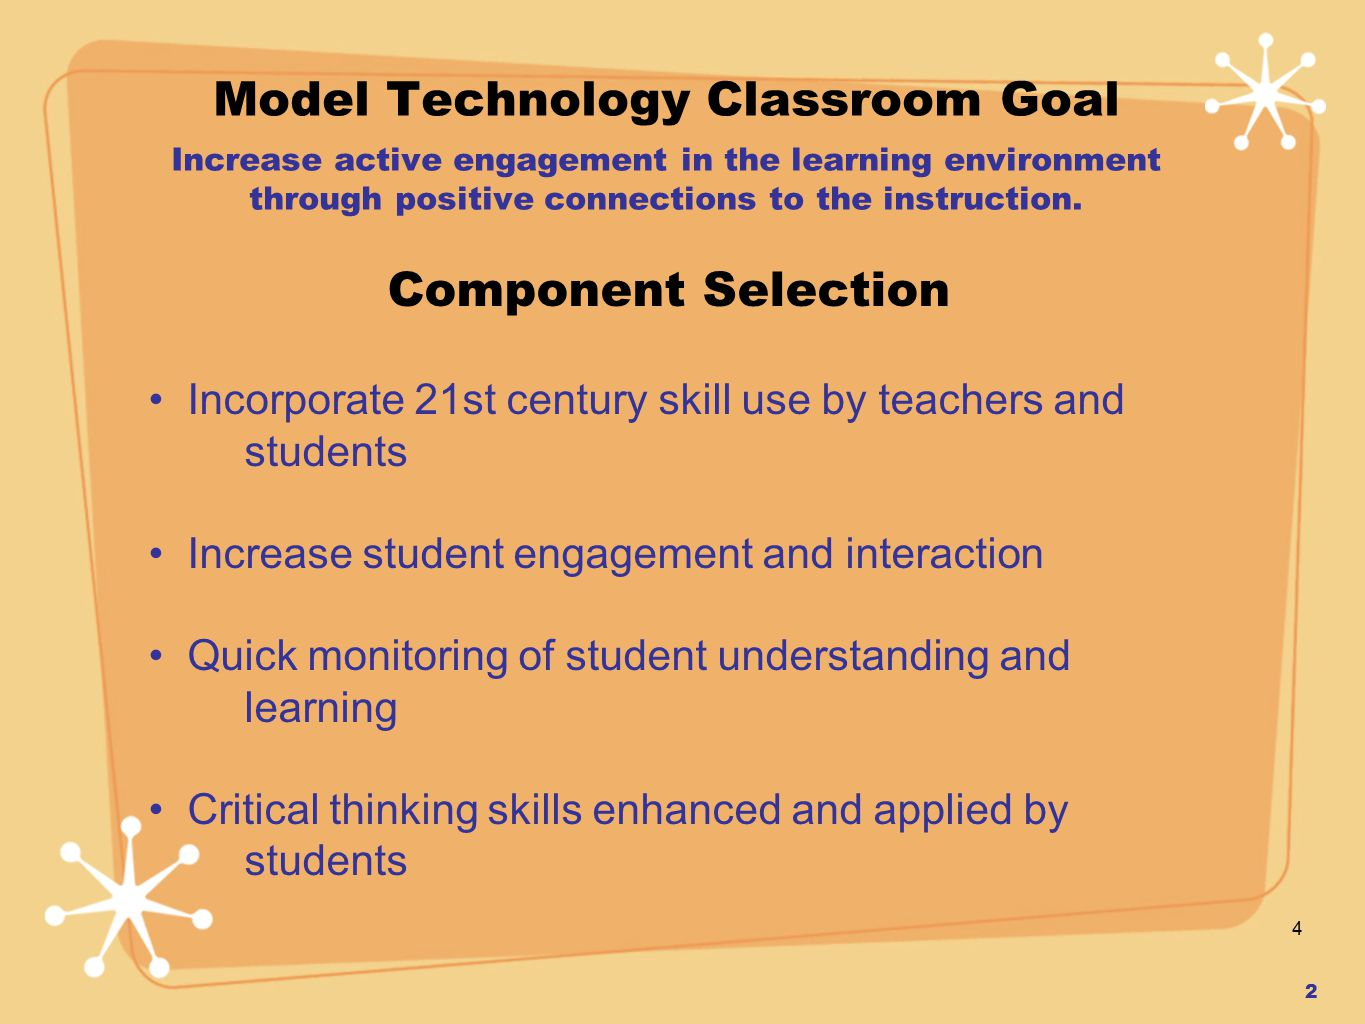 ARRA – Title 1 $115,000.00 earmarked for Model Technology Classrooms 8 Campuses Equitable Varying number of classrooms per campus July 2010 2007 Bond – Projectors for K - 8 District Wide Middle School and Elementary Short throw projectors Provides possible bridge to further implementation 13